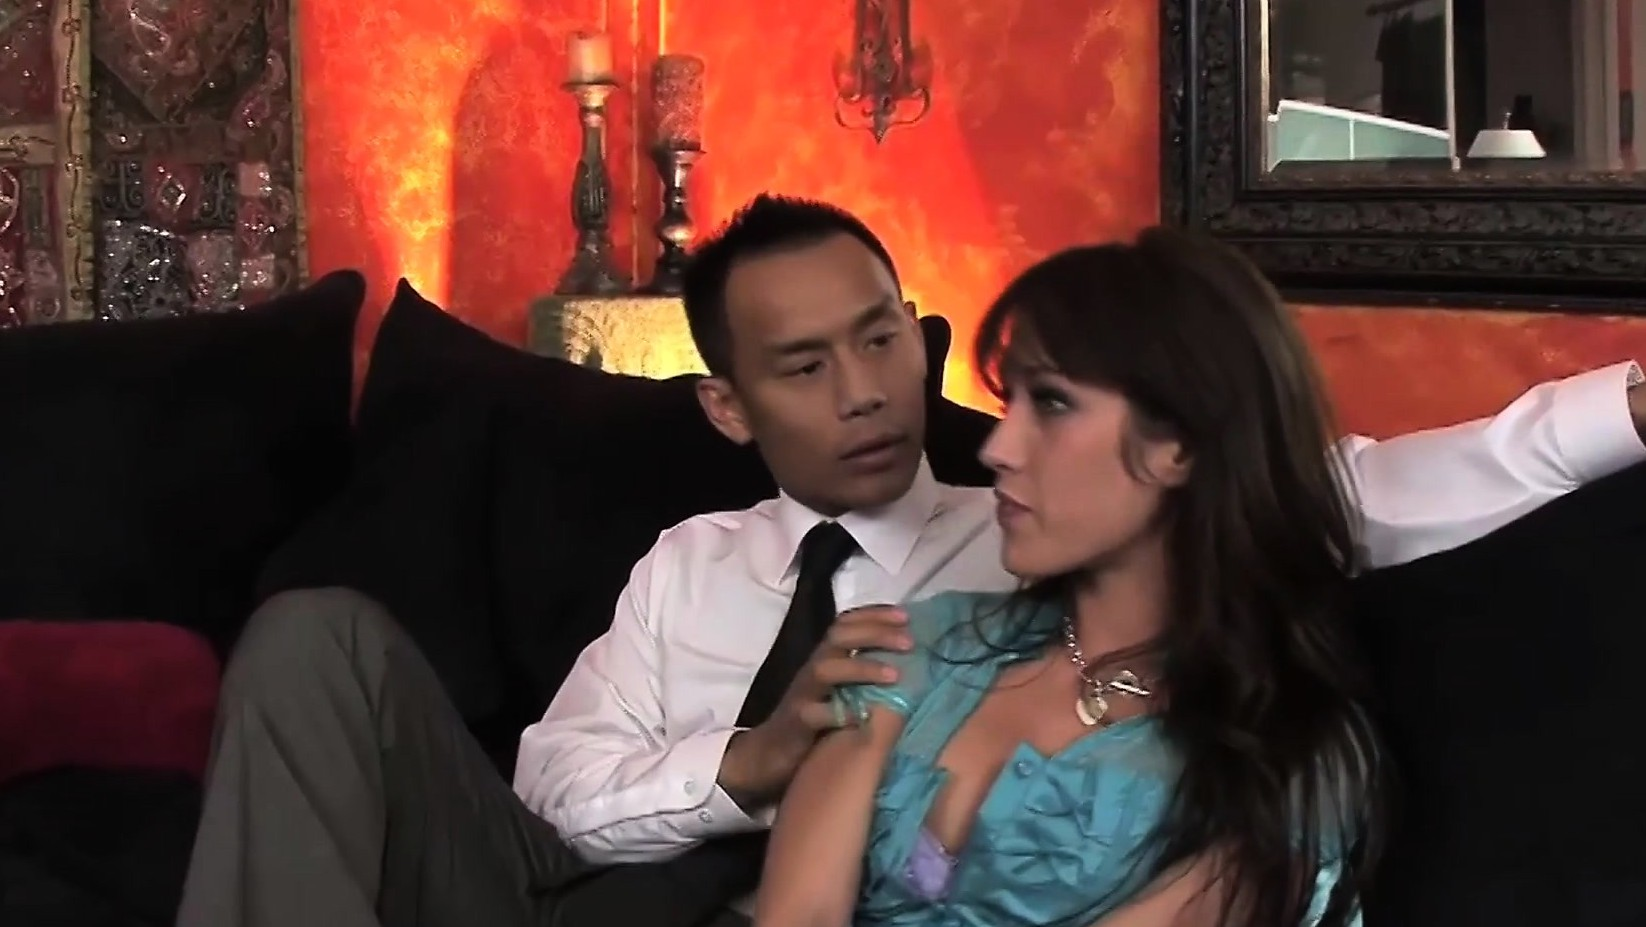 The Horny Maid Gets Fucked Hard In This Hot Threesome